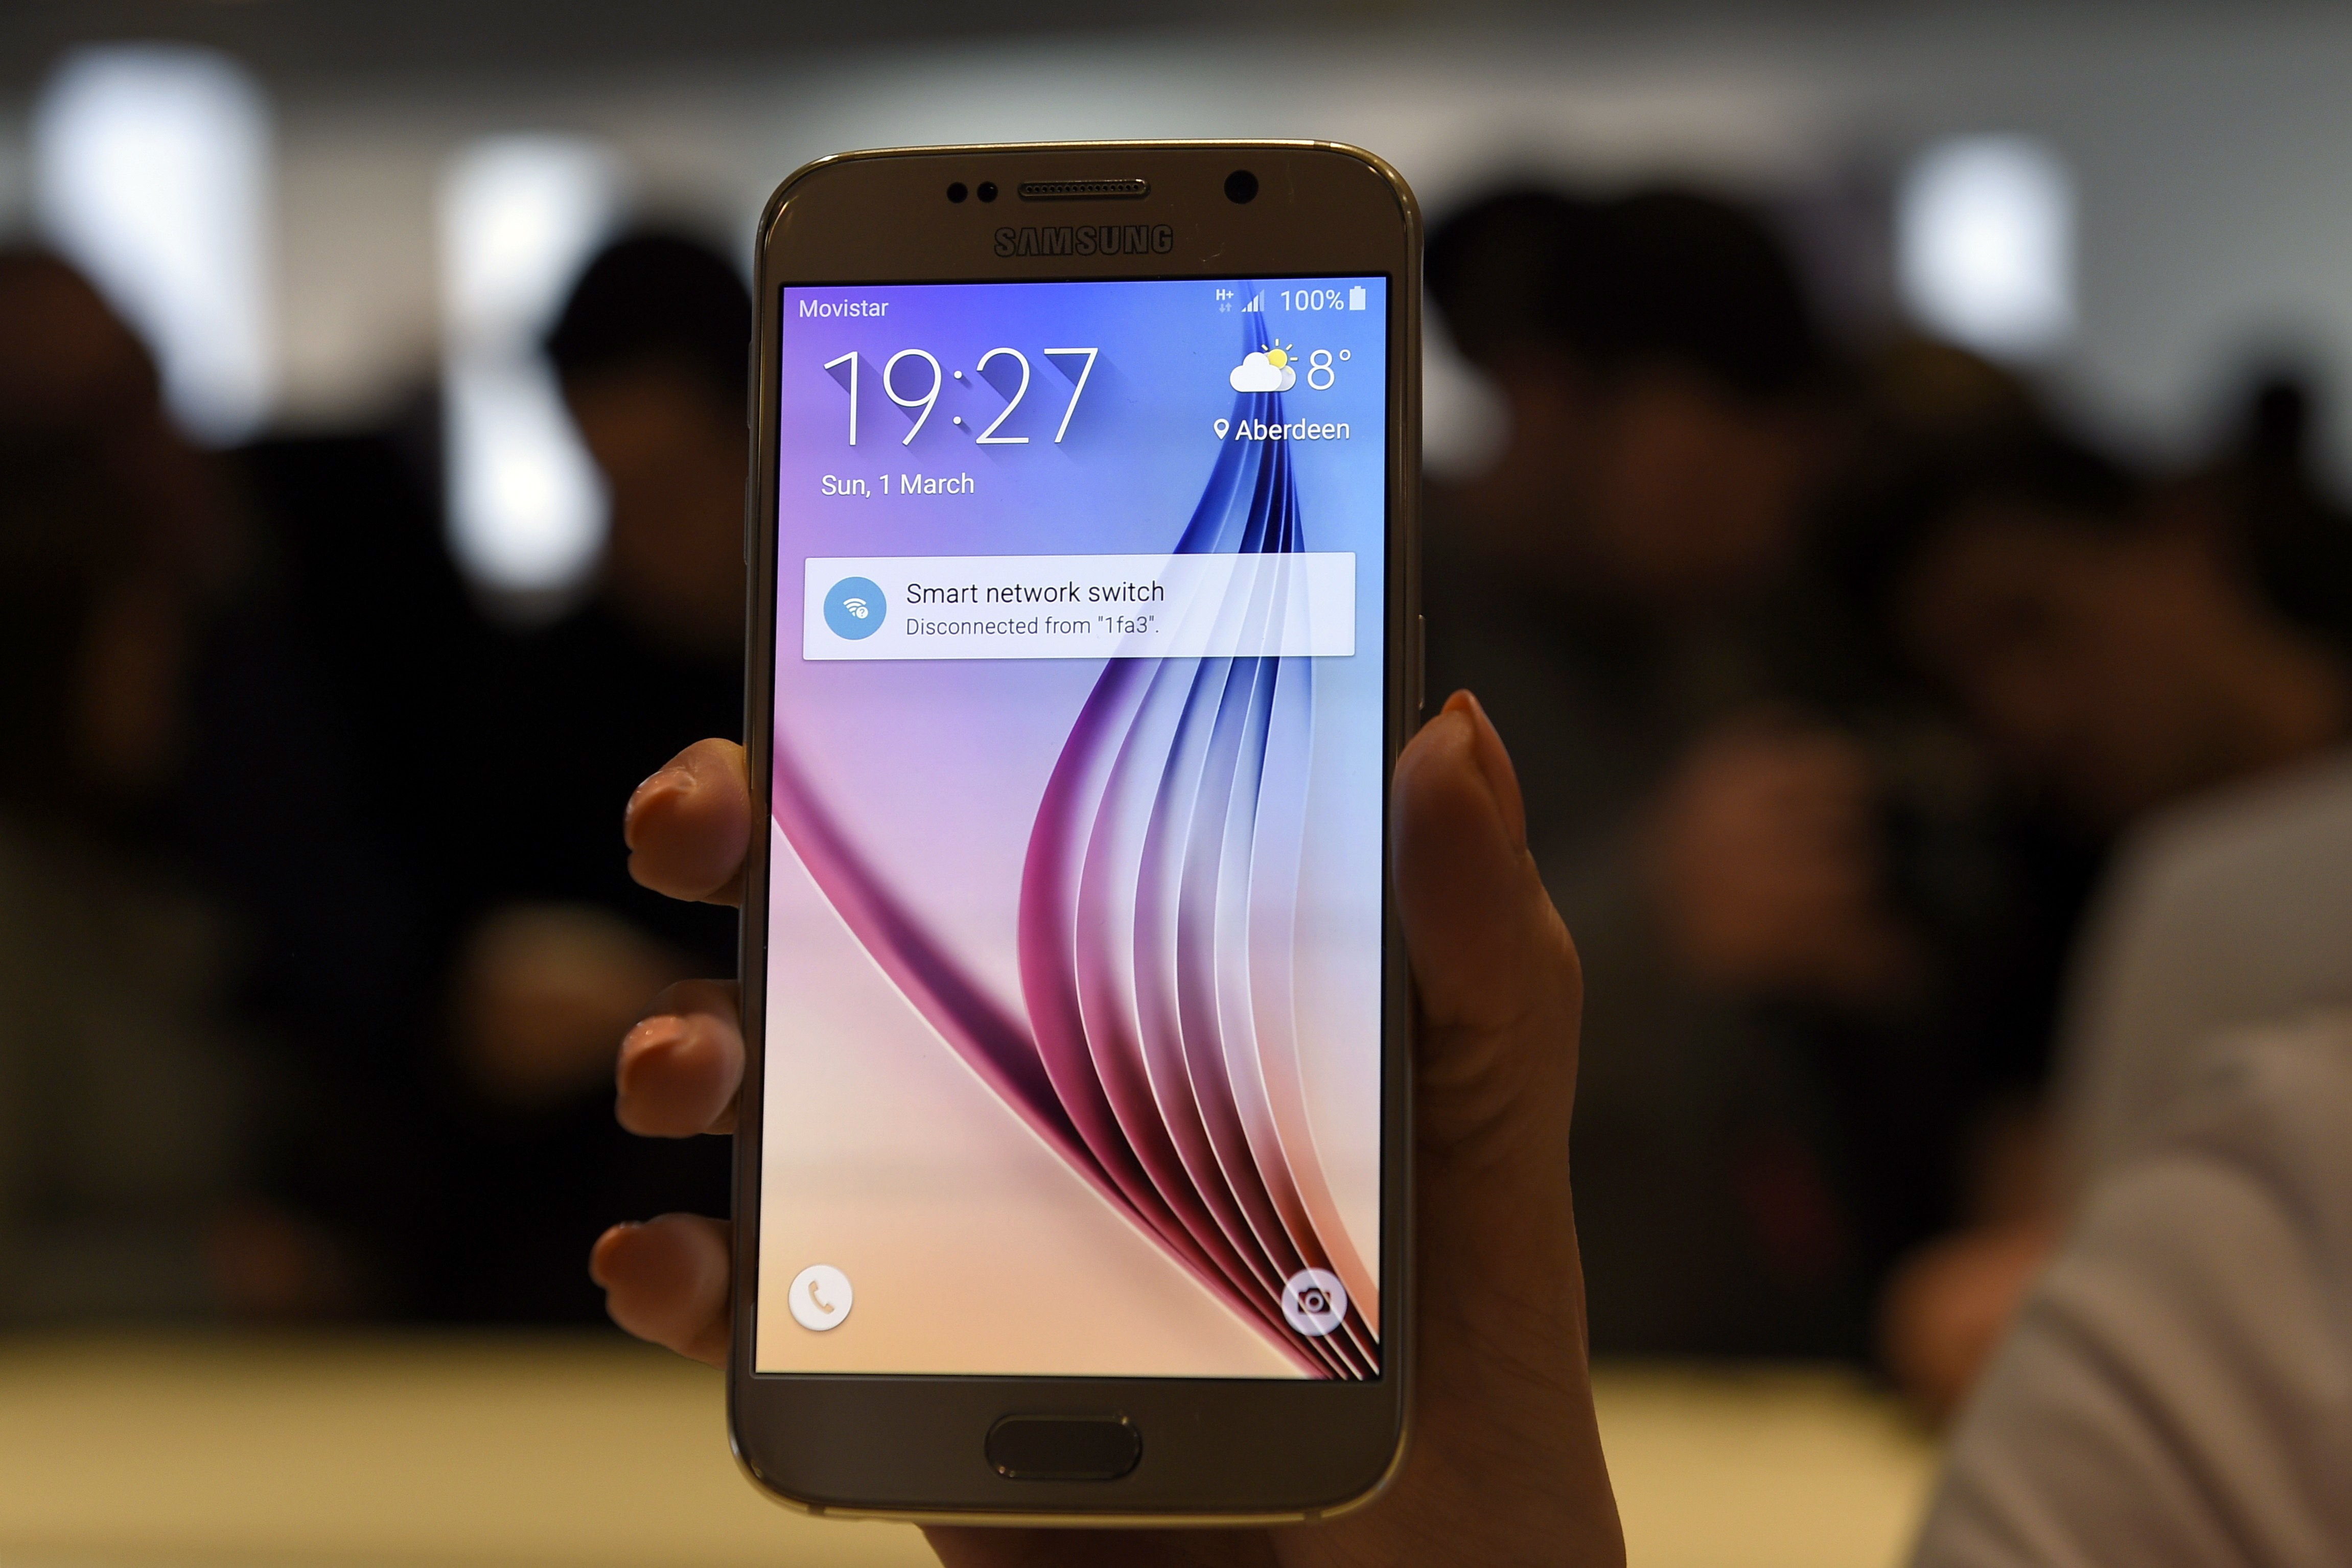 The Samsung Galaxy S6 is presented during the 2015 Mobile World Congress in Barcelona on March 1, 2015.